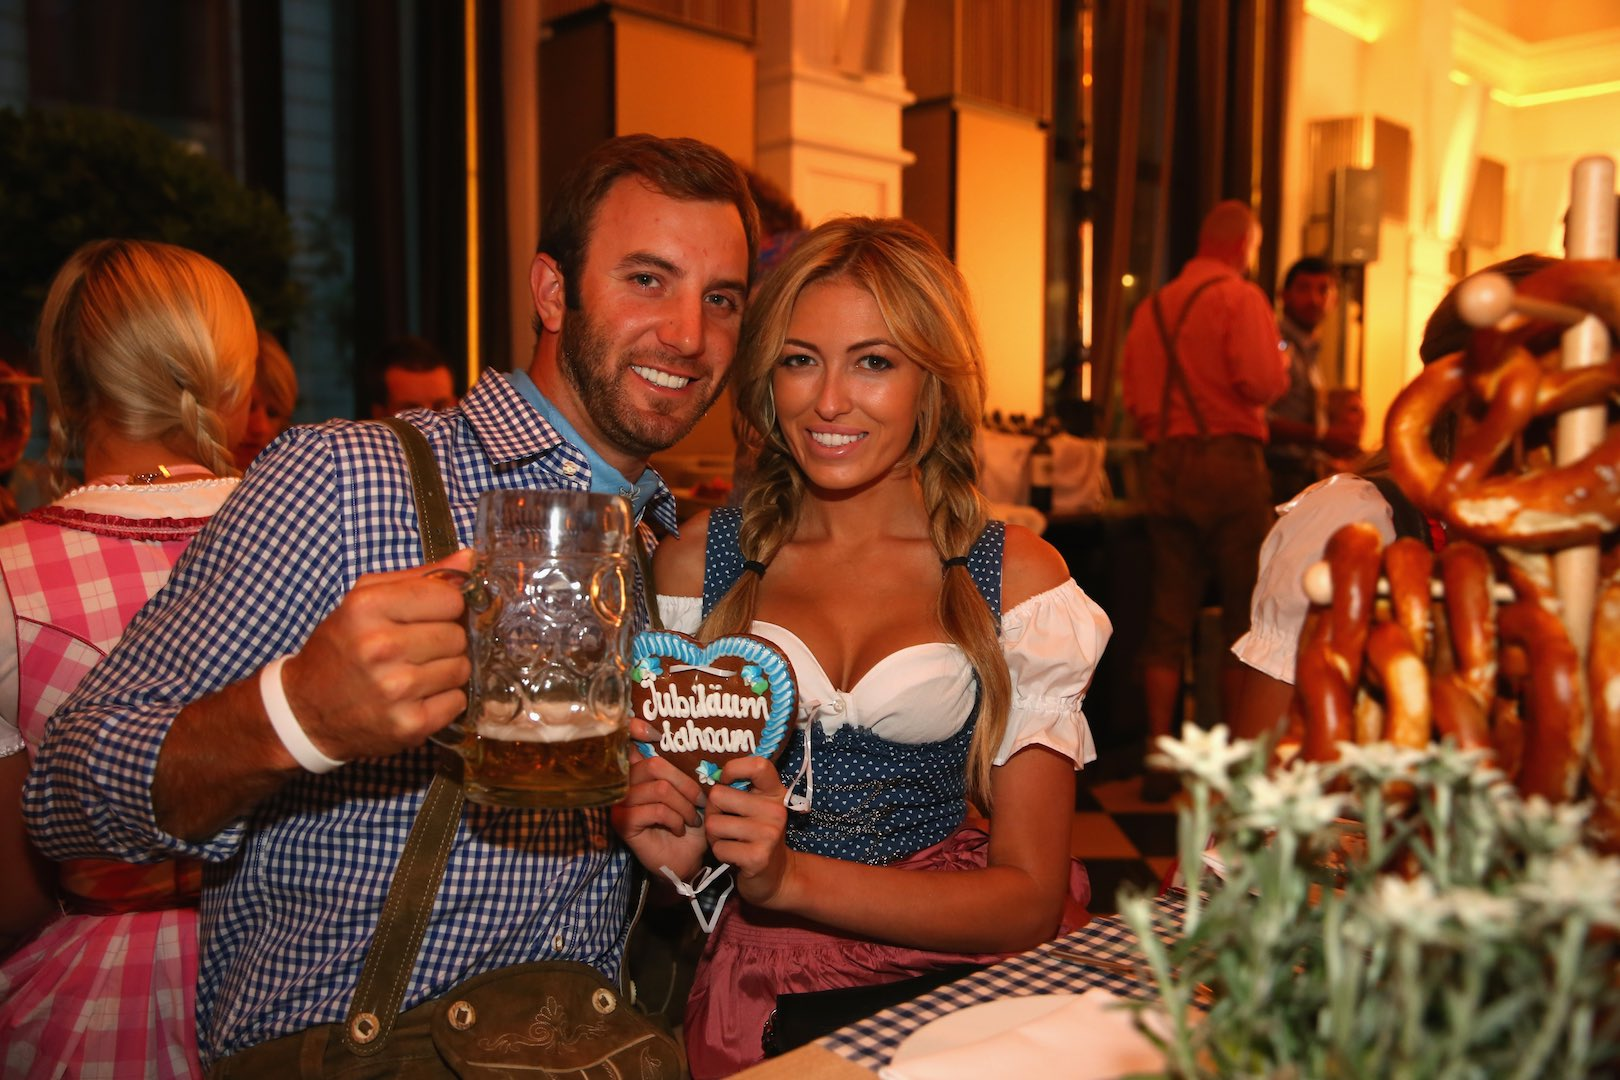 Paulina Gretzky melts the internet again